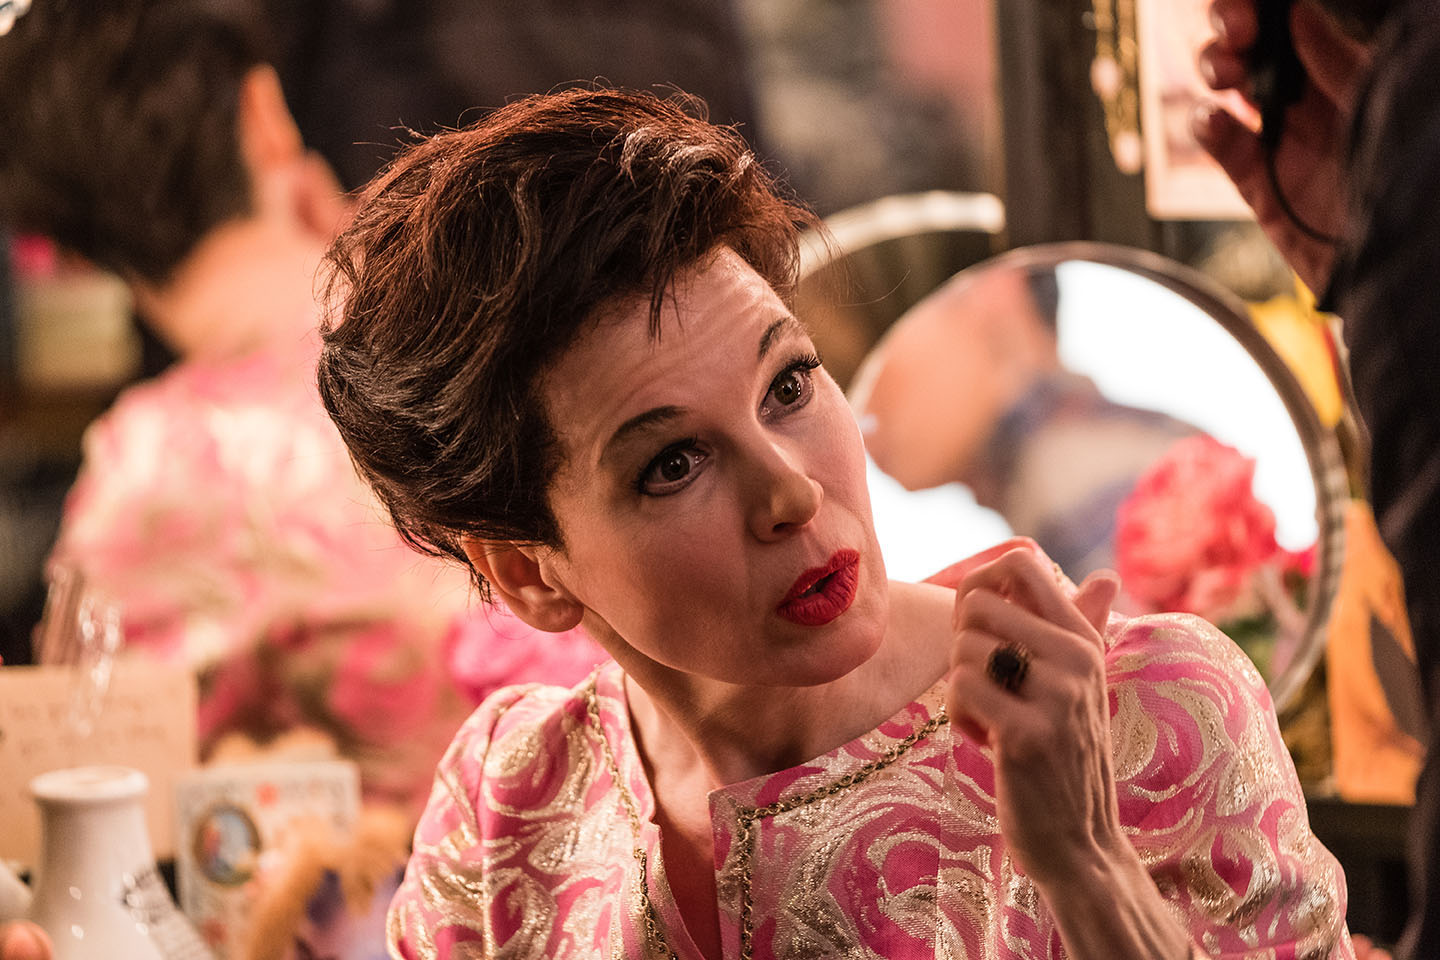 JUDY movie. Actress Renée Zellweger as Judy Garland